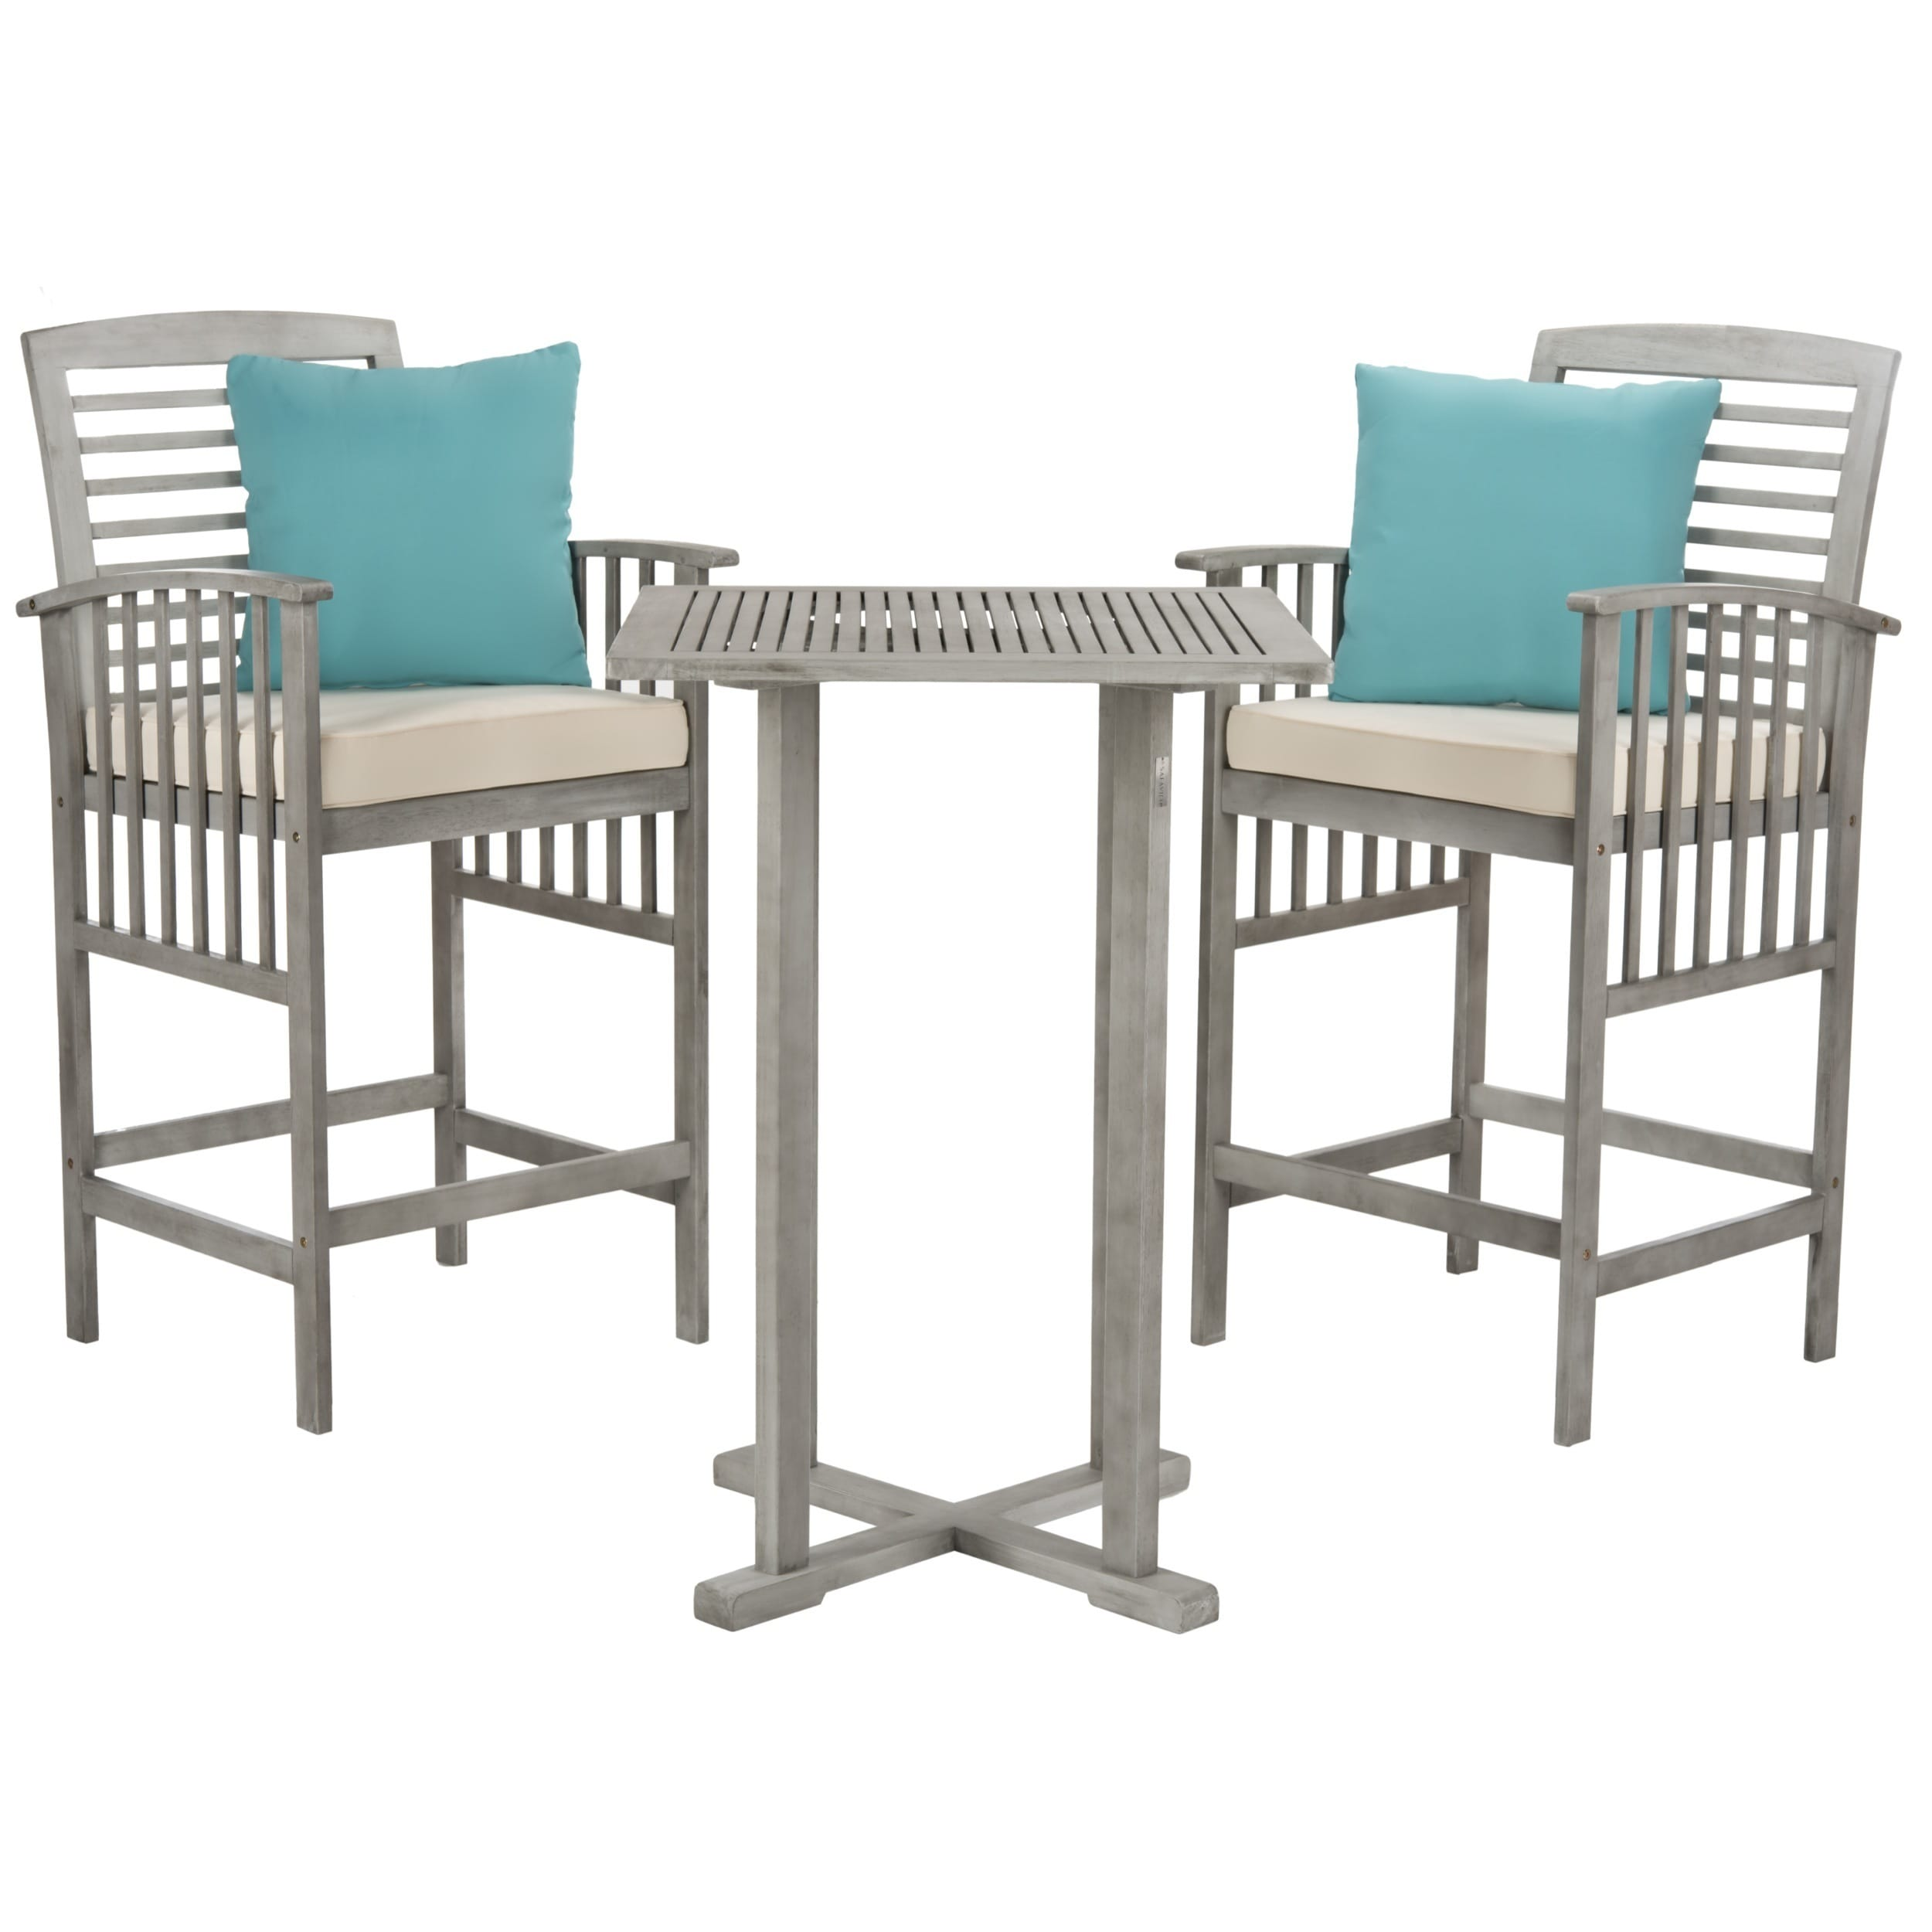 Shop Safavieh Outdoor Living Pate 3-Piece Grey Wash/ White Bar Table ...